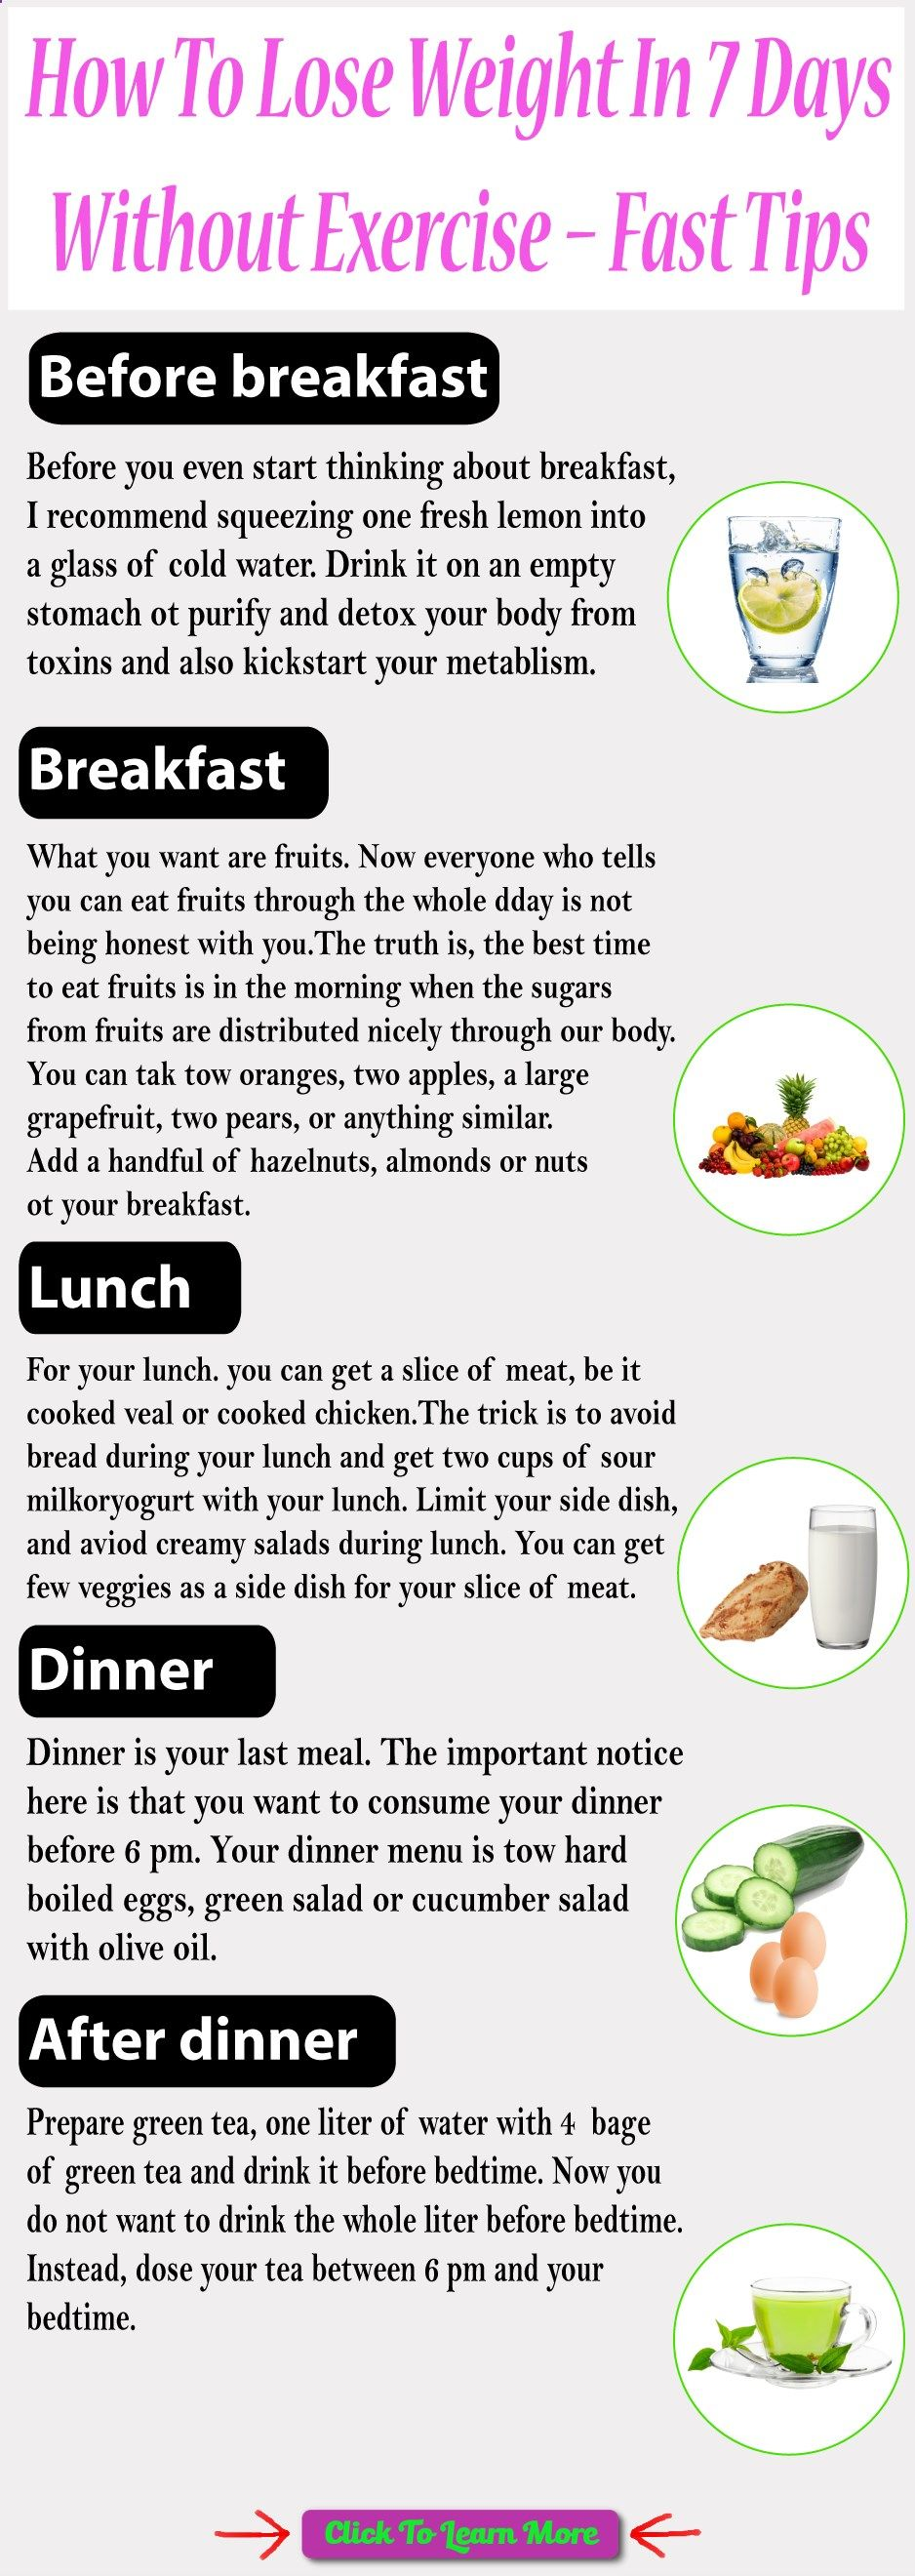 Weight loss is not an easy task if you dont have a strong determination, find the best tips on How To Lose Weight In 7 Days Without Exercise #health #fitness #weightloss #healthyrecipes #weightlossrecipes